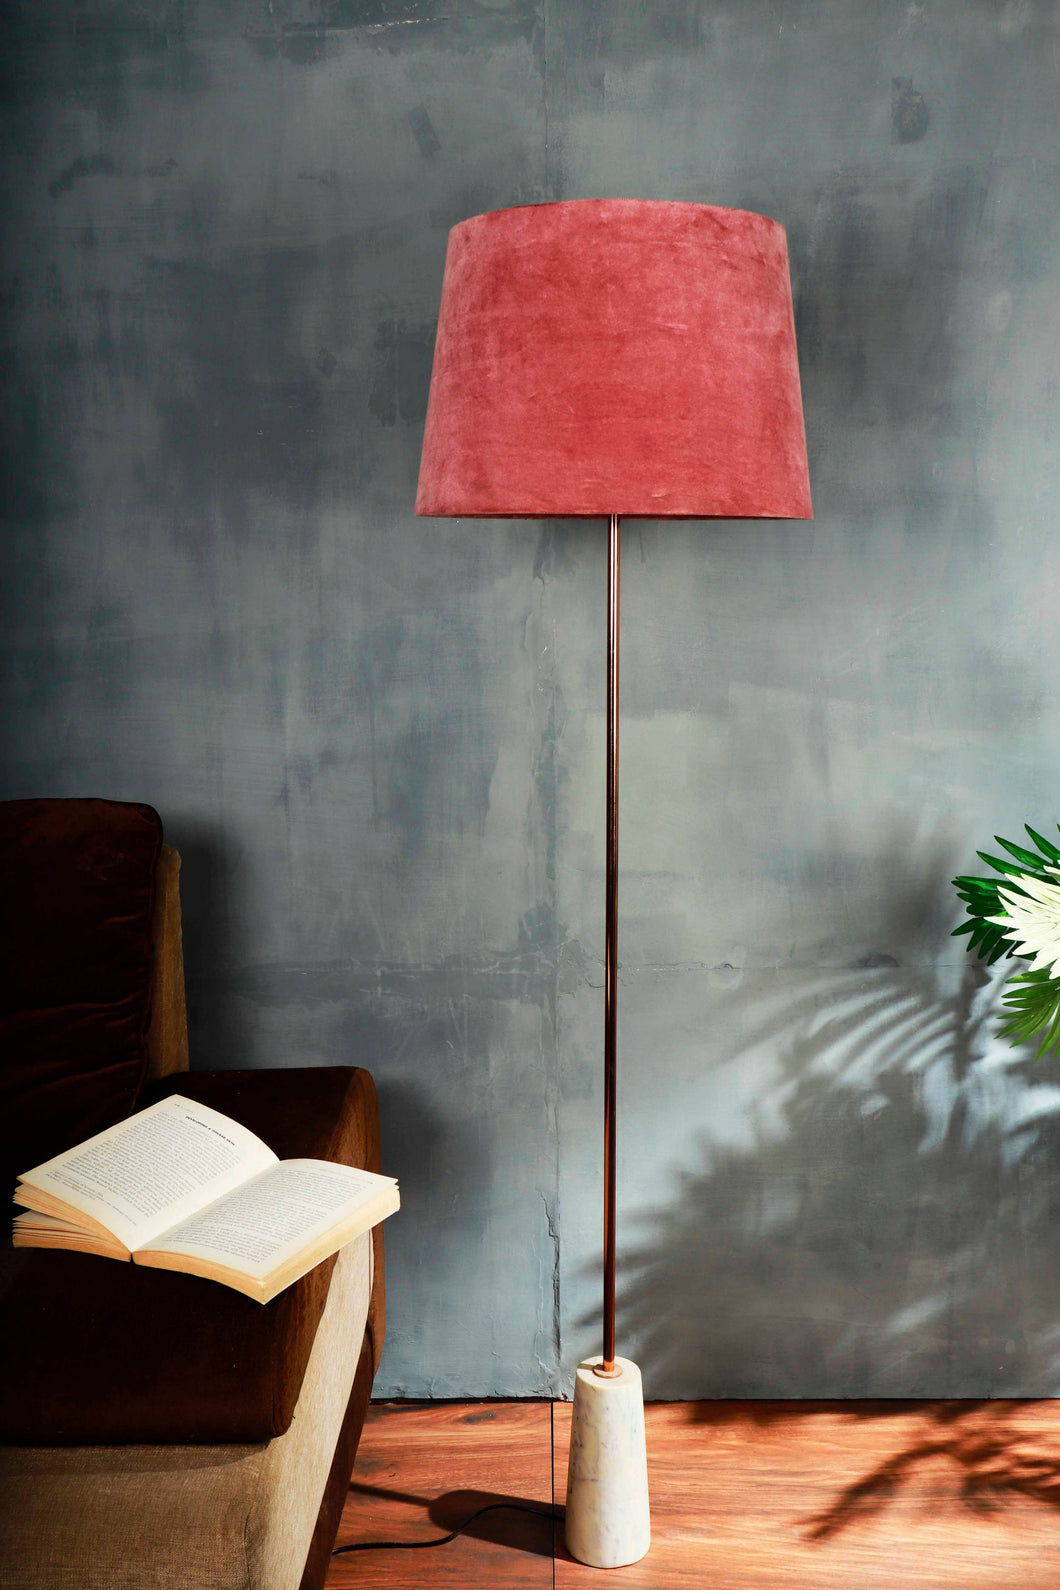 Marble Arrow Lamp Stand with Dusty Pink Velvet Lampshade